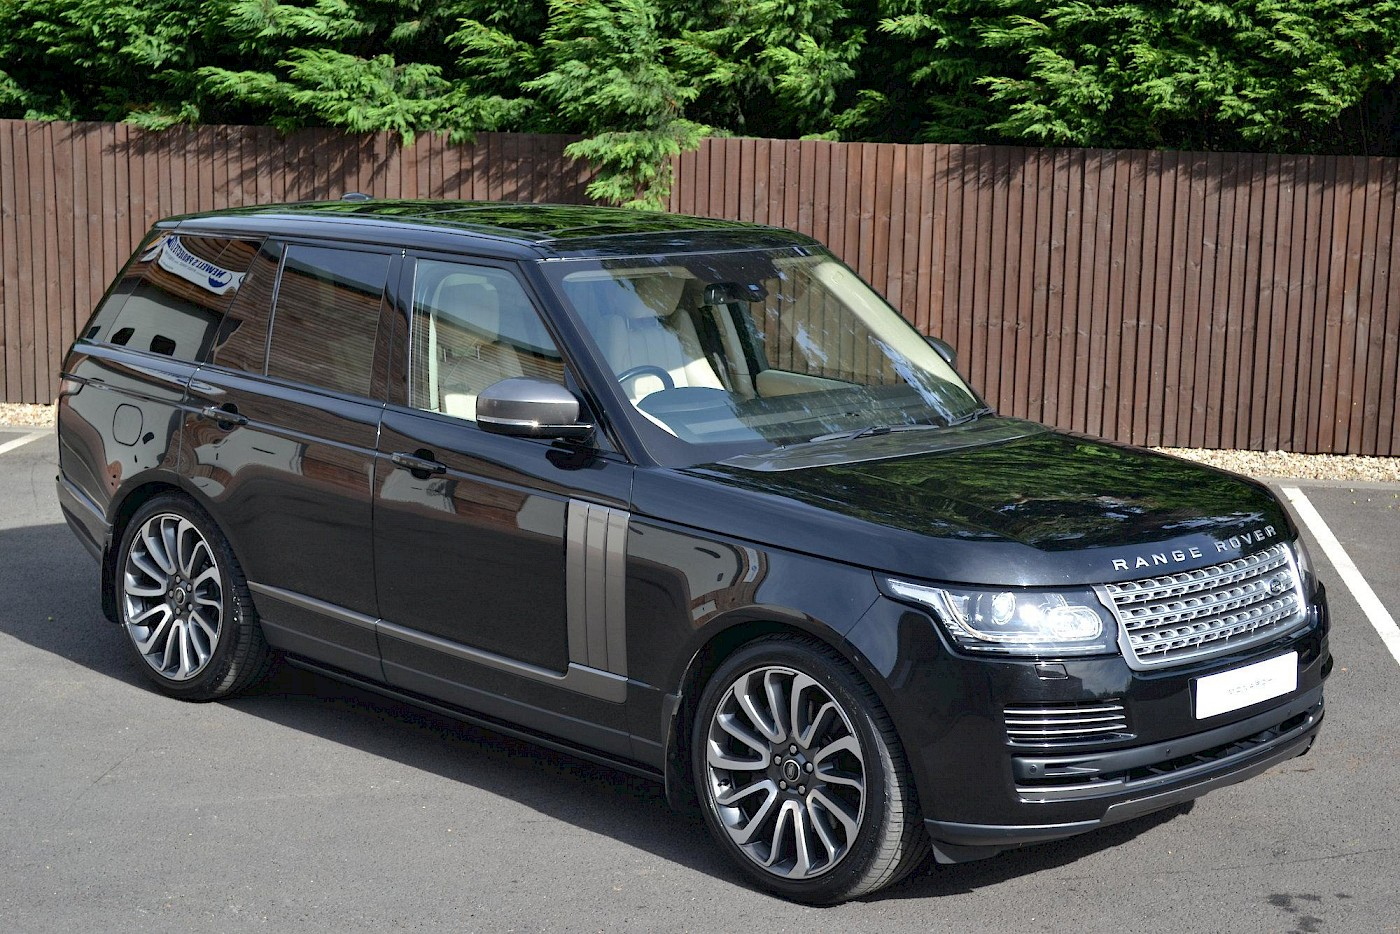 2013/13 Land Rover Range Rover Vogue 4.4 1